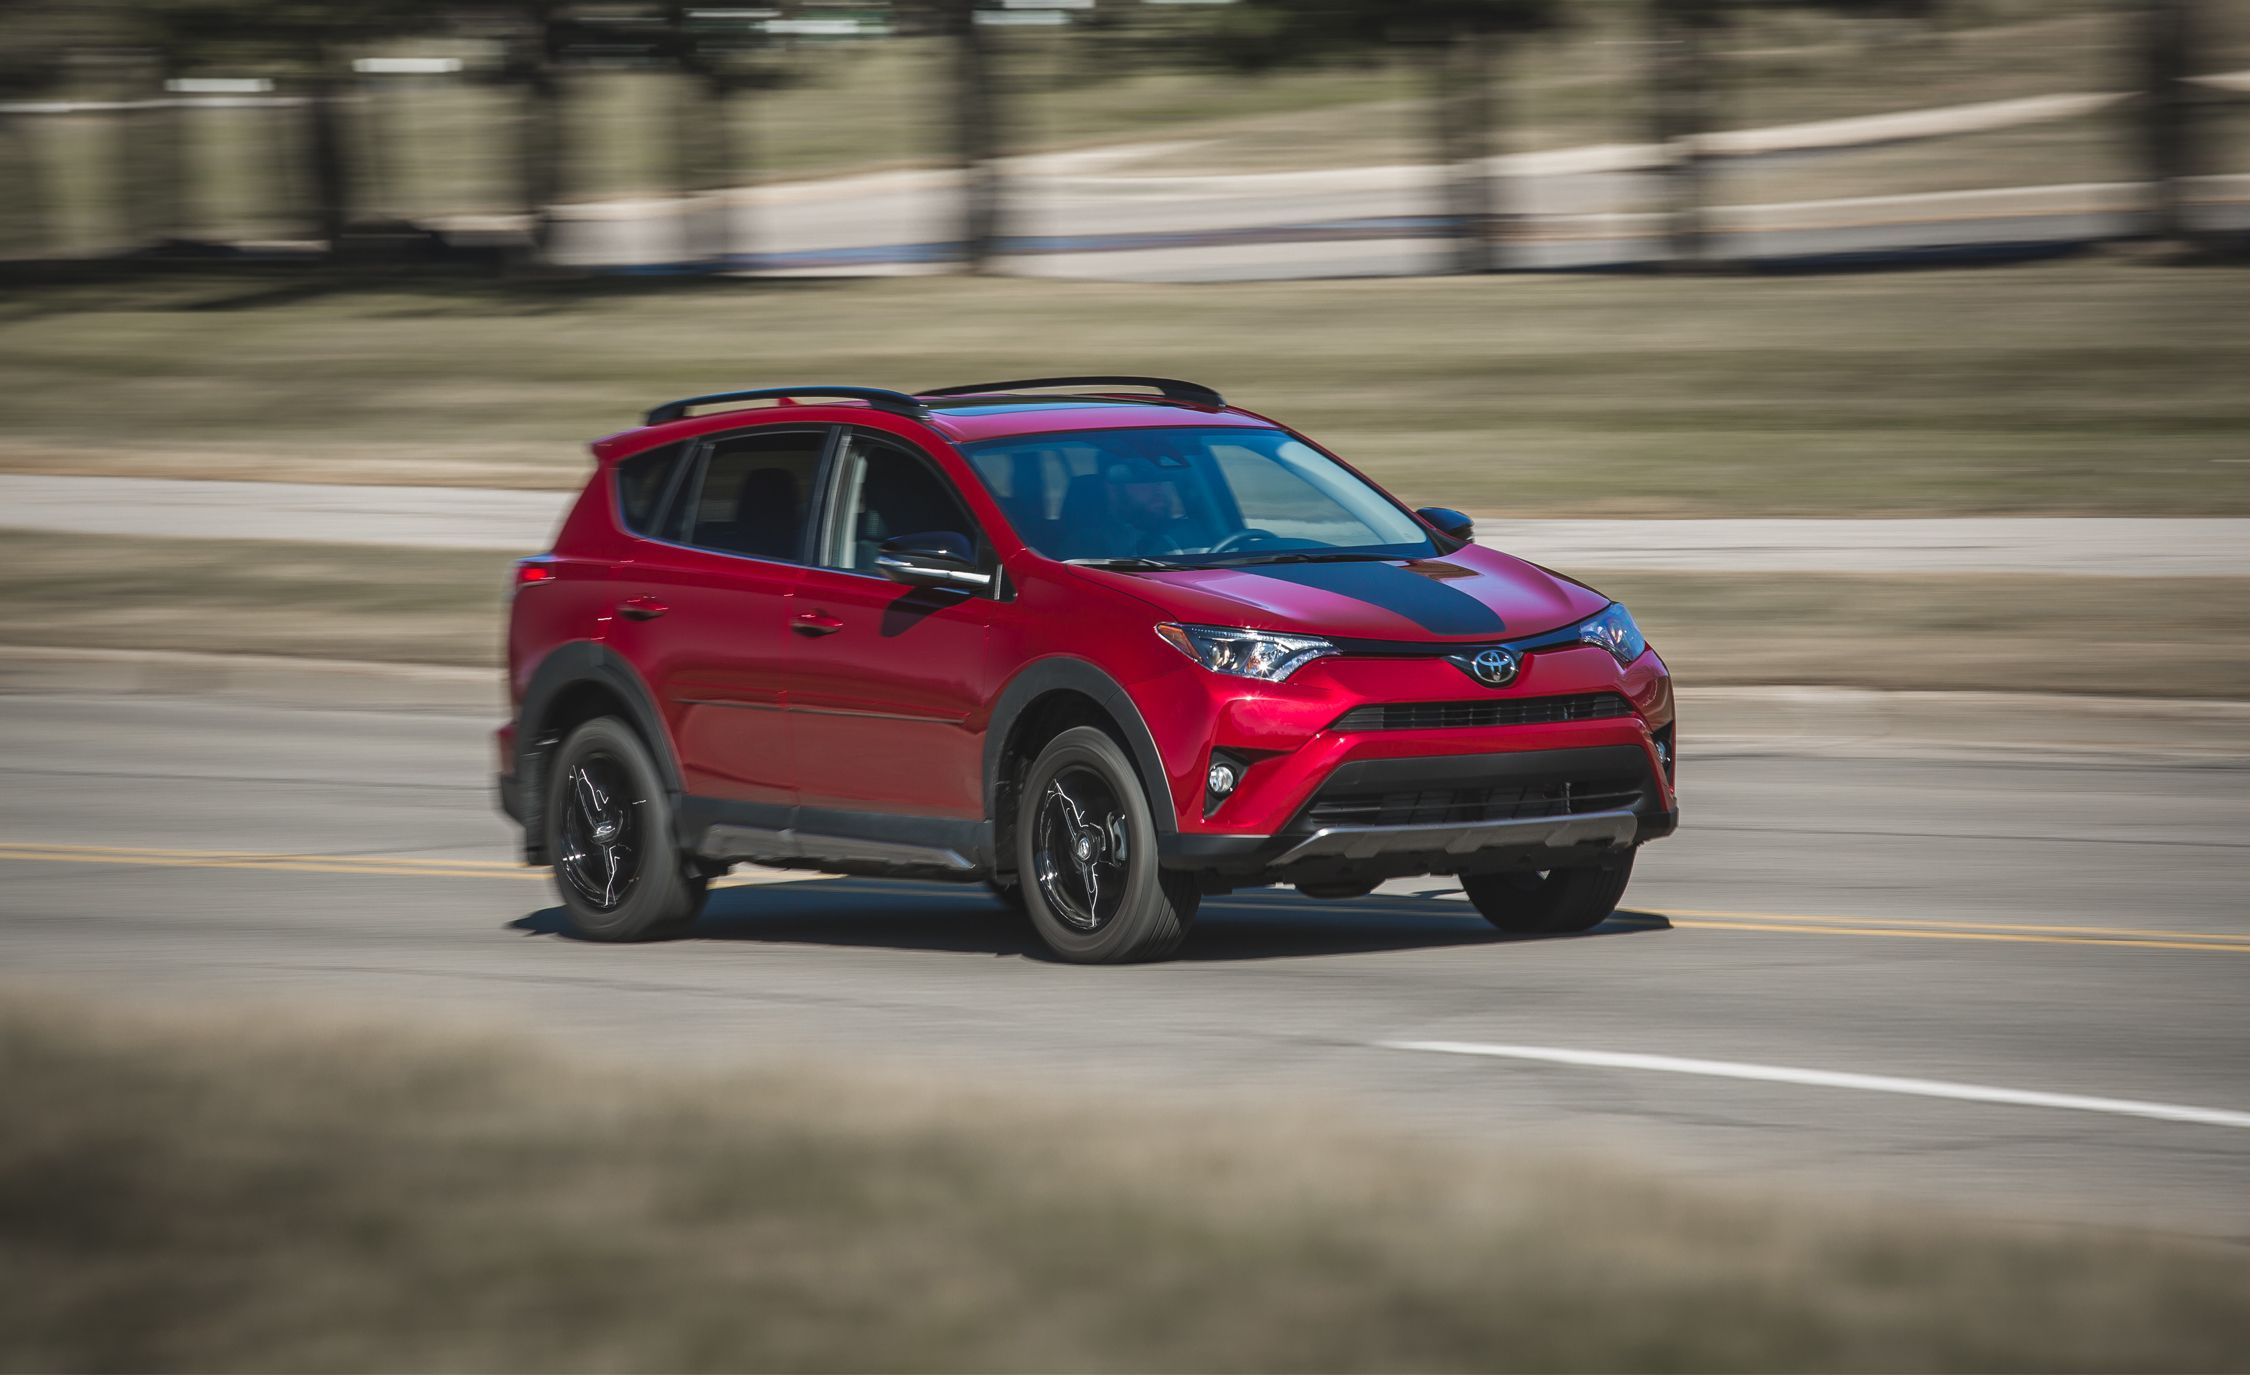 2018 Toyota RAV4 Reviews, Performance, Changes, Interior, Exterior, Engine and Price